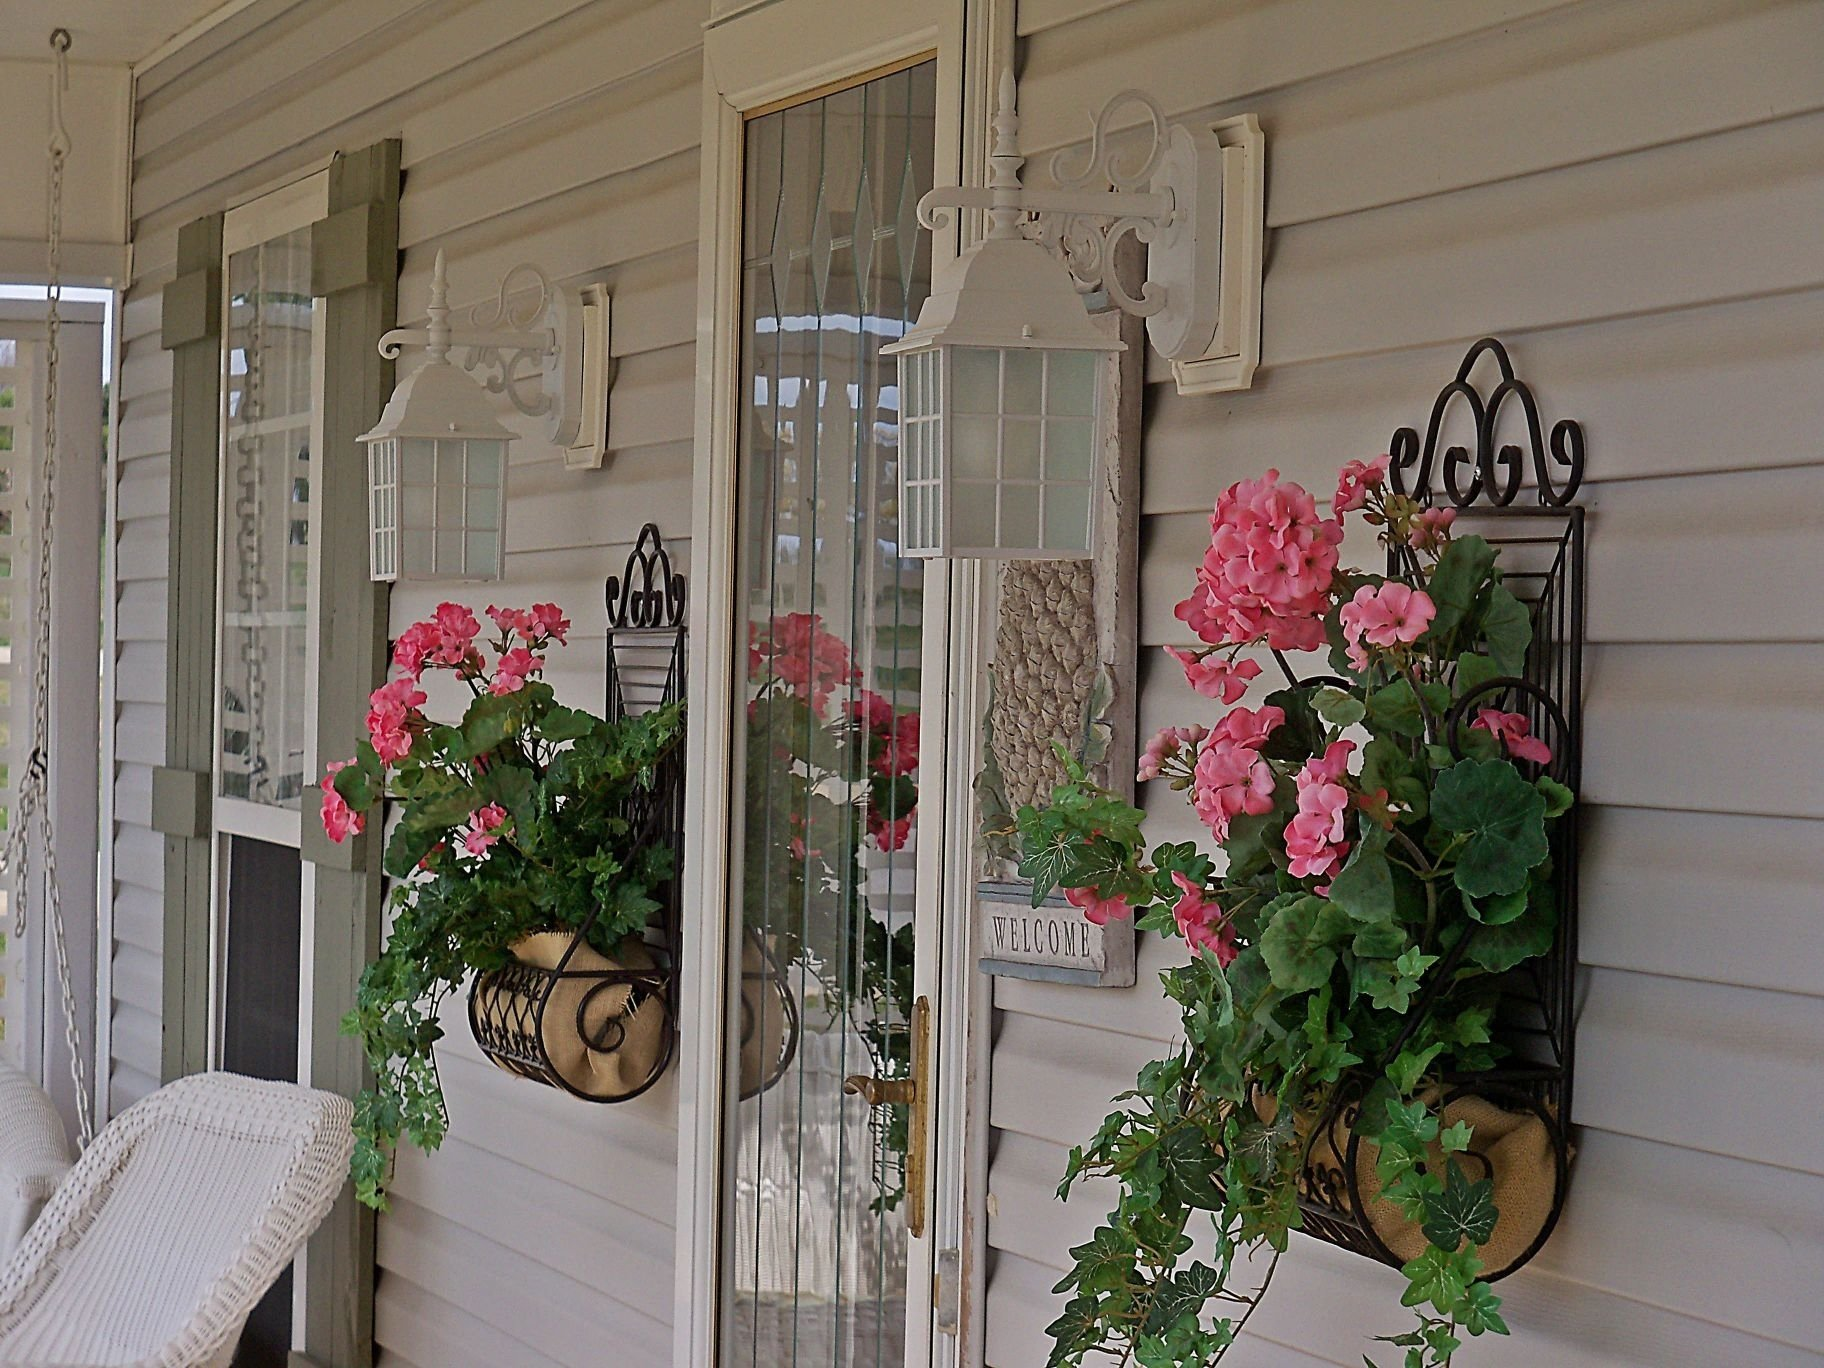 10 Ideal Front Porch Decorating Ideas For Spring inspiring front porch decorating ideas spring and summer decoto pic 2021